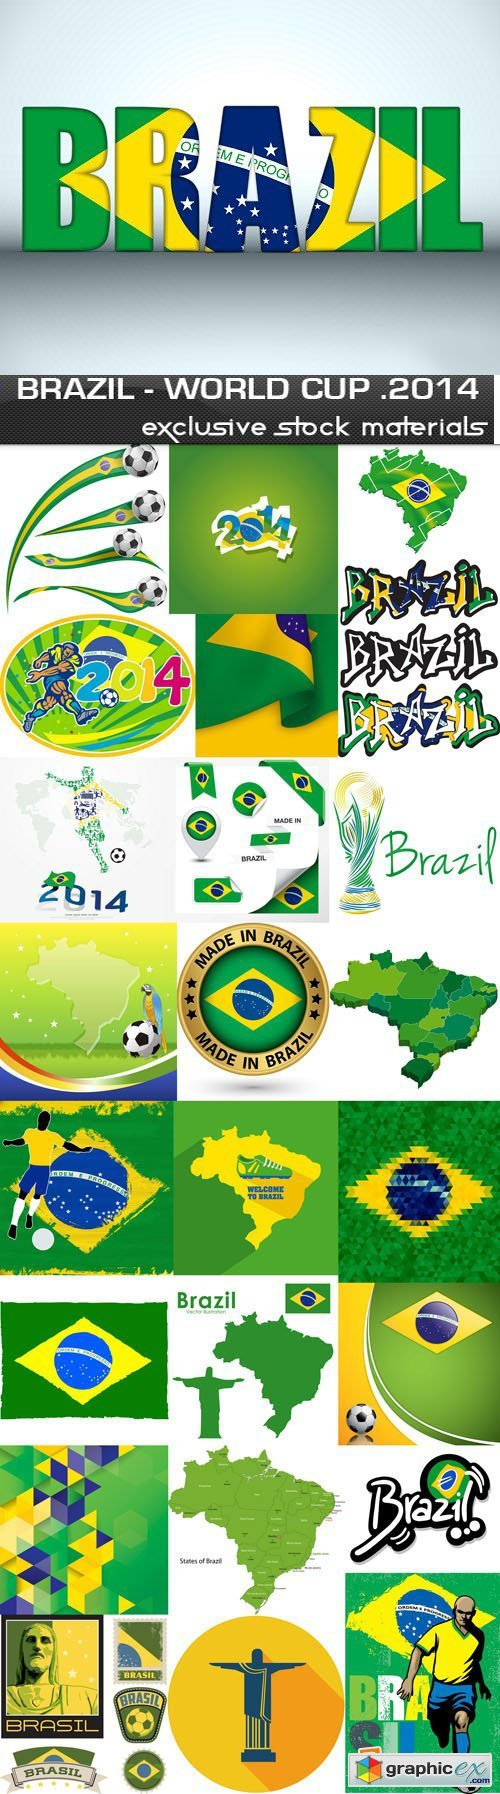 Brazil - FIFA World Cup 2014, 25xEPS